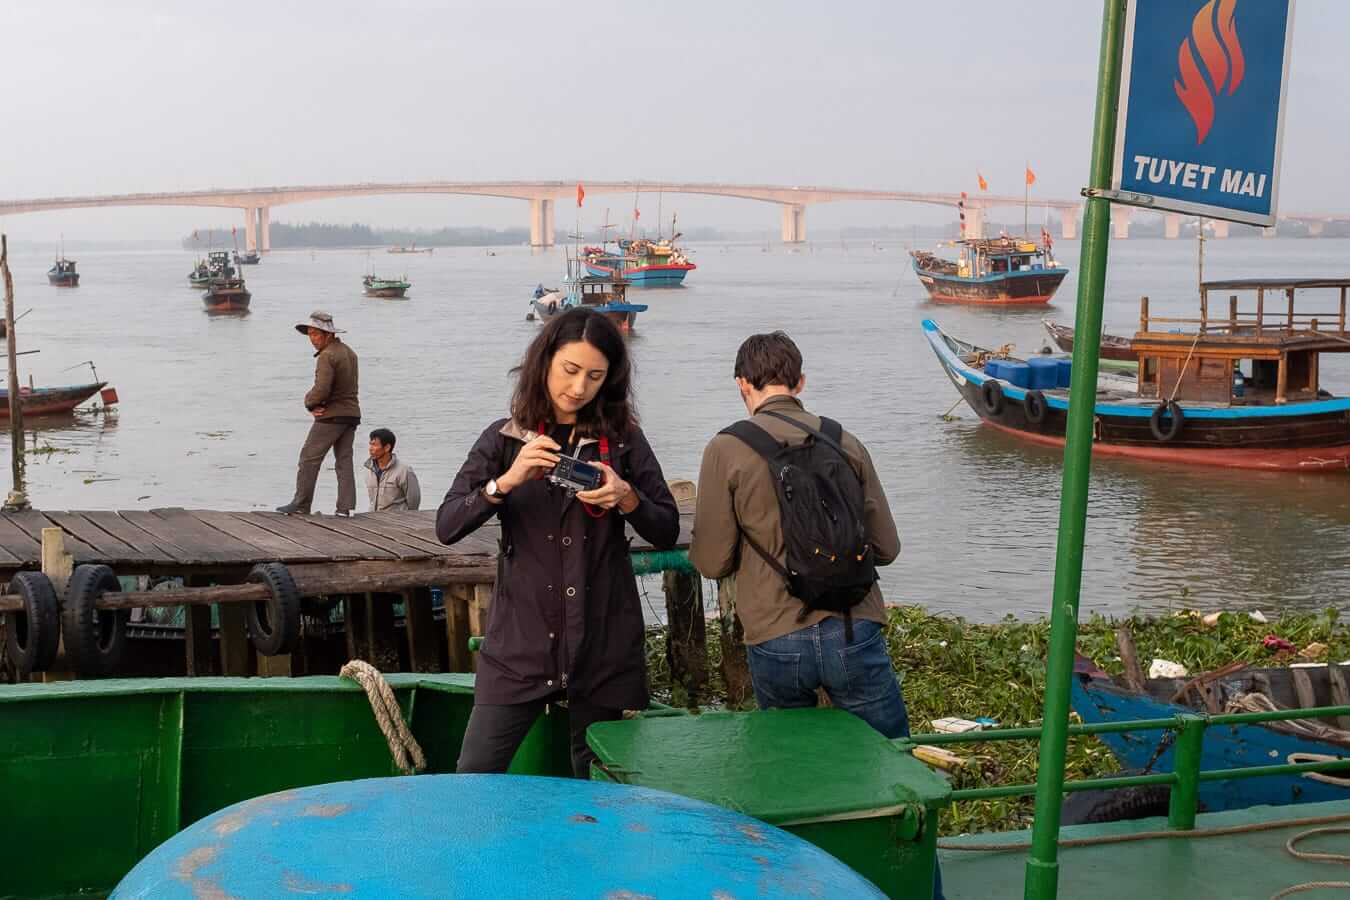 Hidden taking pictures: Hoi An Photography Tour